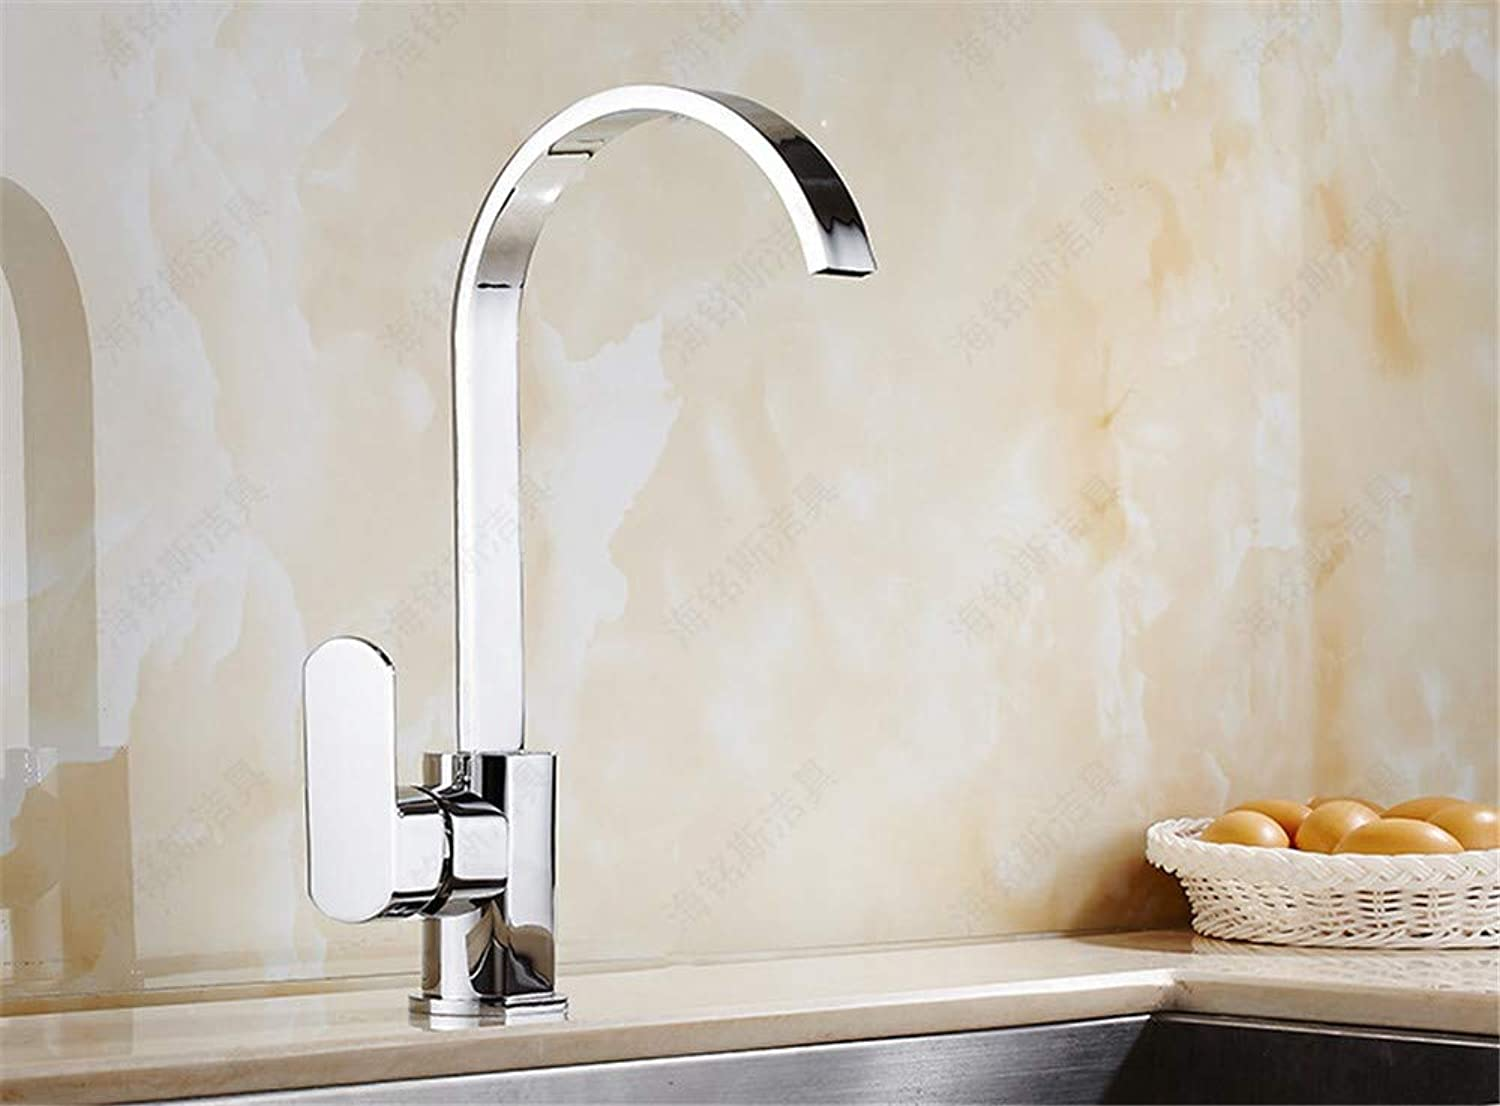 Sink Tap Kitchen Sink Sink Basin Above Counter Basin Hot and Cold Water Faucet Flat Tube Can Be redated